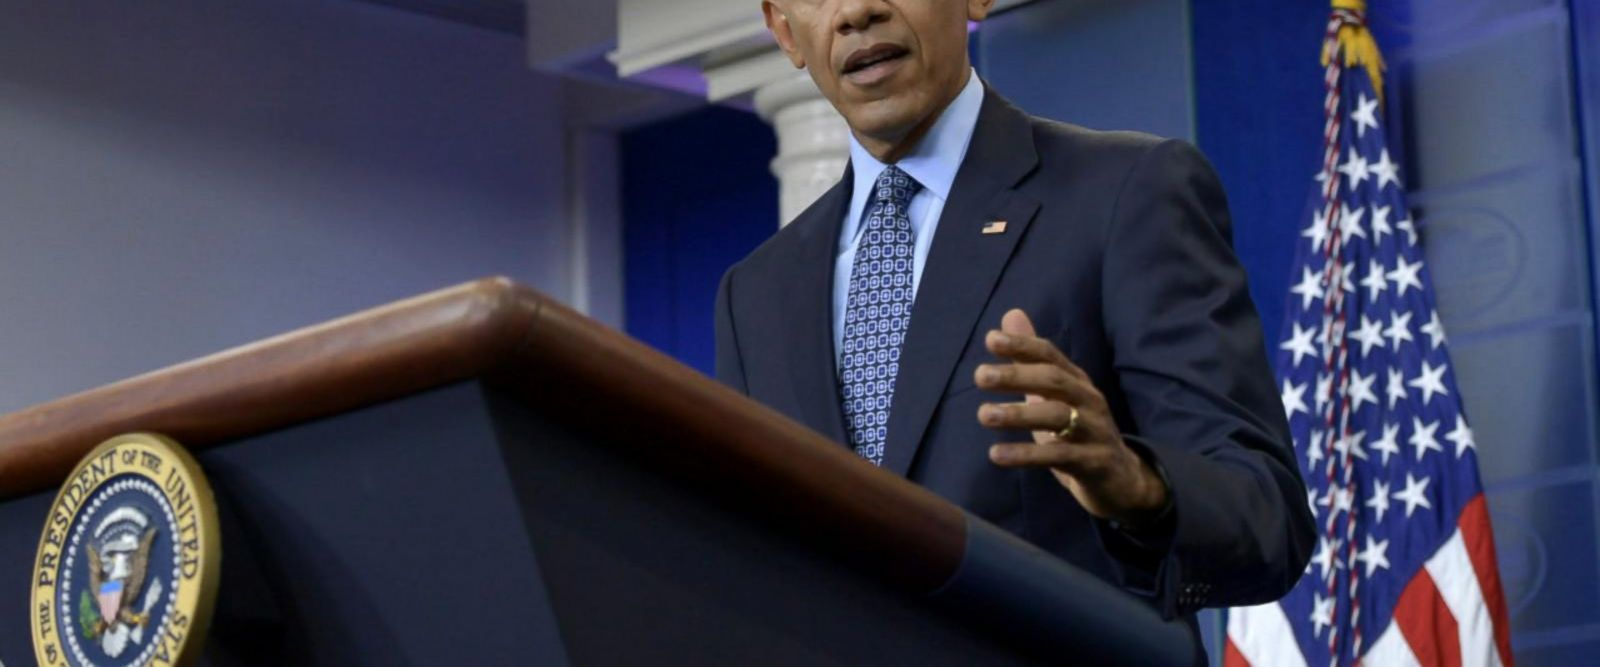 VIDEO: President Barack Obama Holds His Last Press Conference